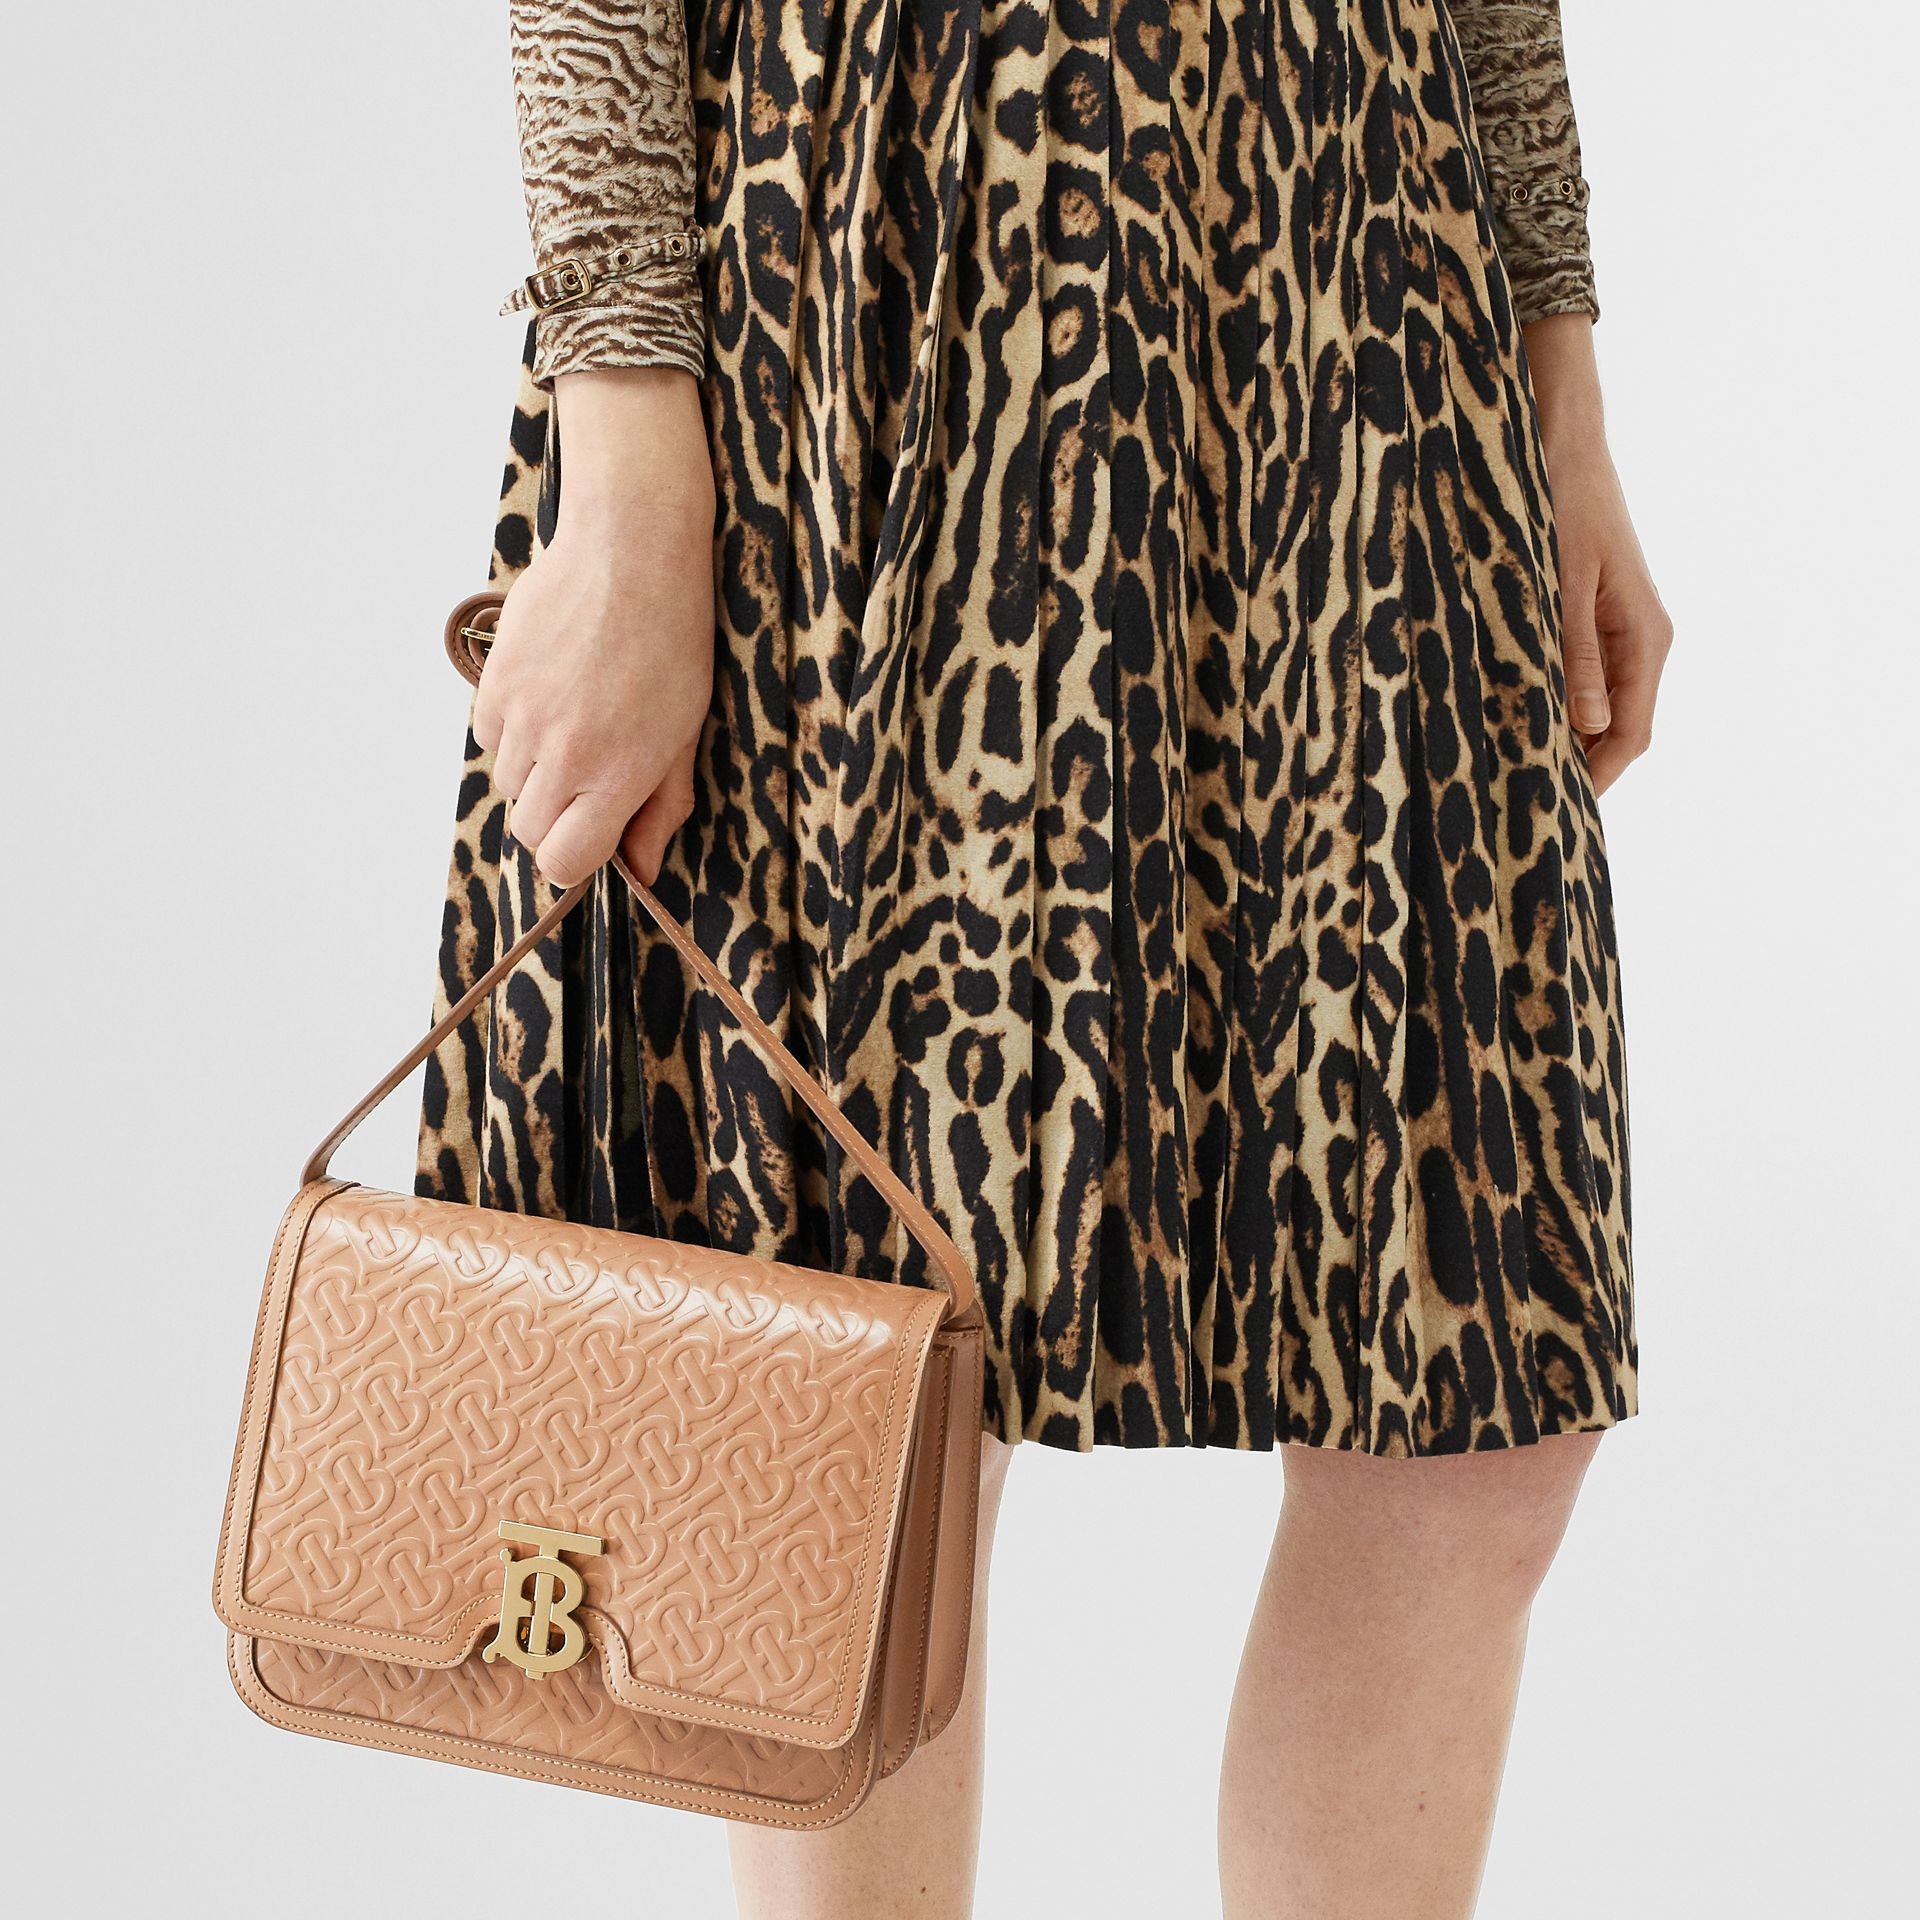 Medium Monogram Leather TB Bag in Light Camel - Women | Burberry Australia - gallery image 2